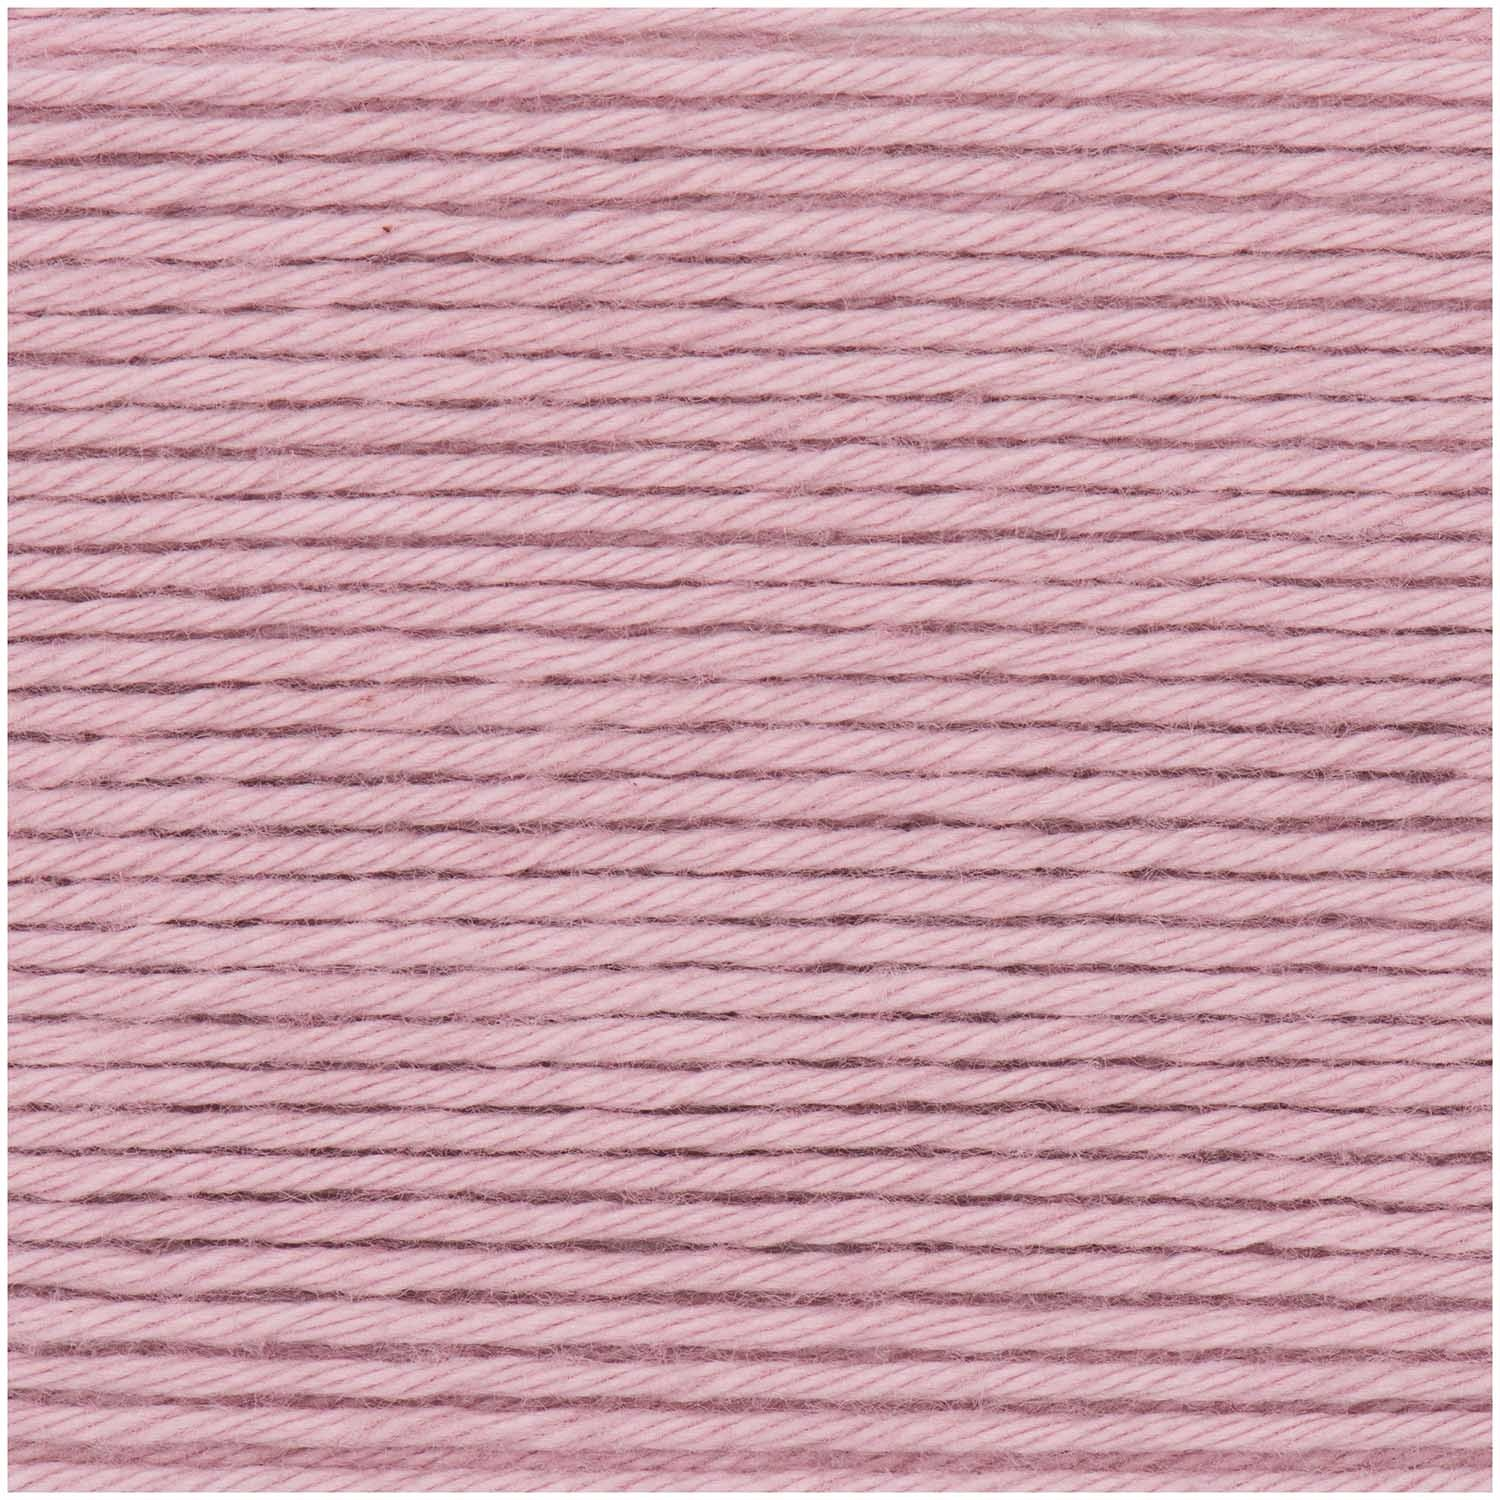 Rico Rico Baby Cotton Soft - 047 - Altrosa